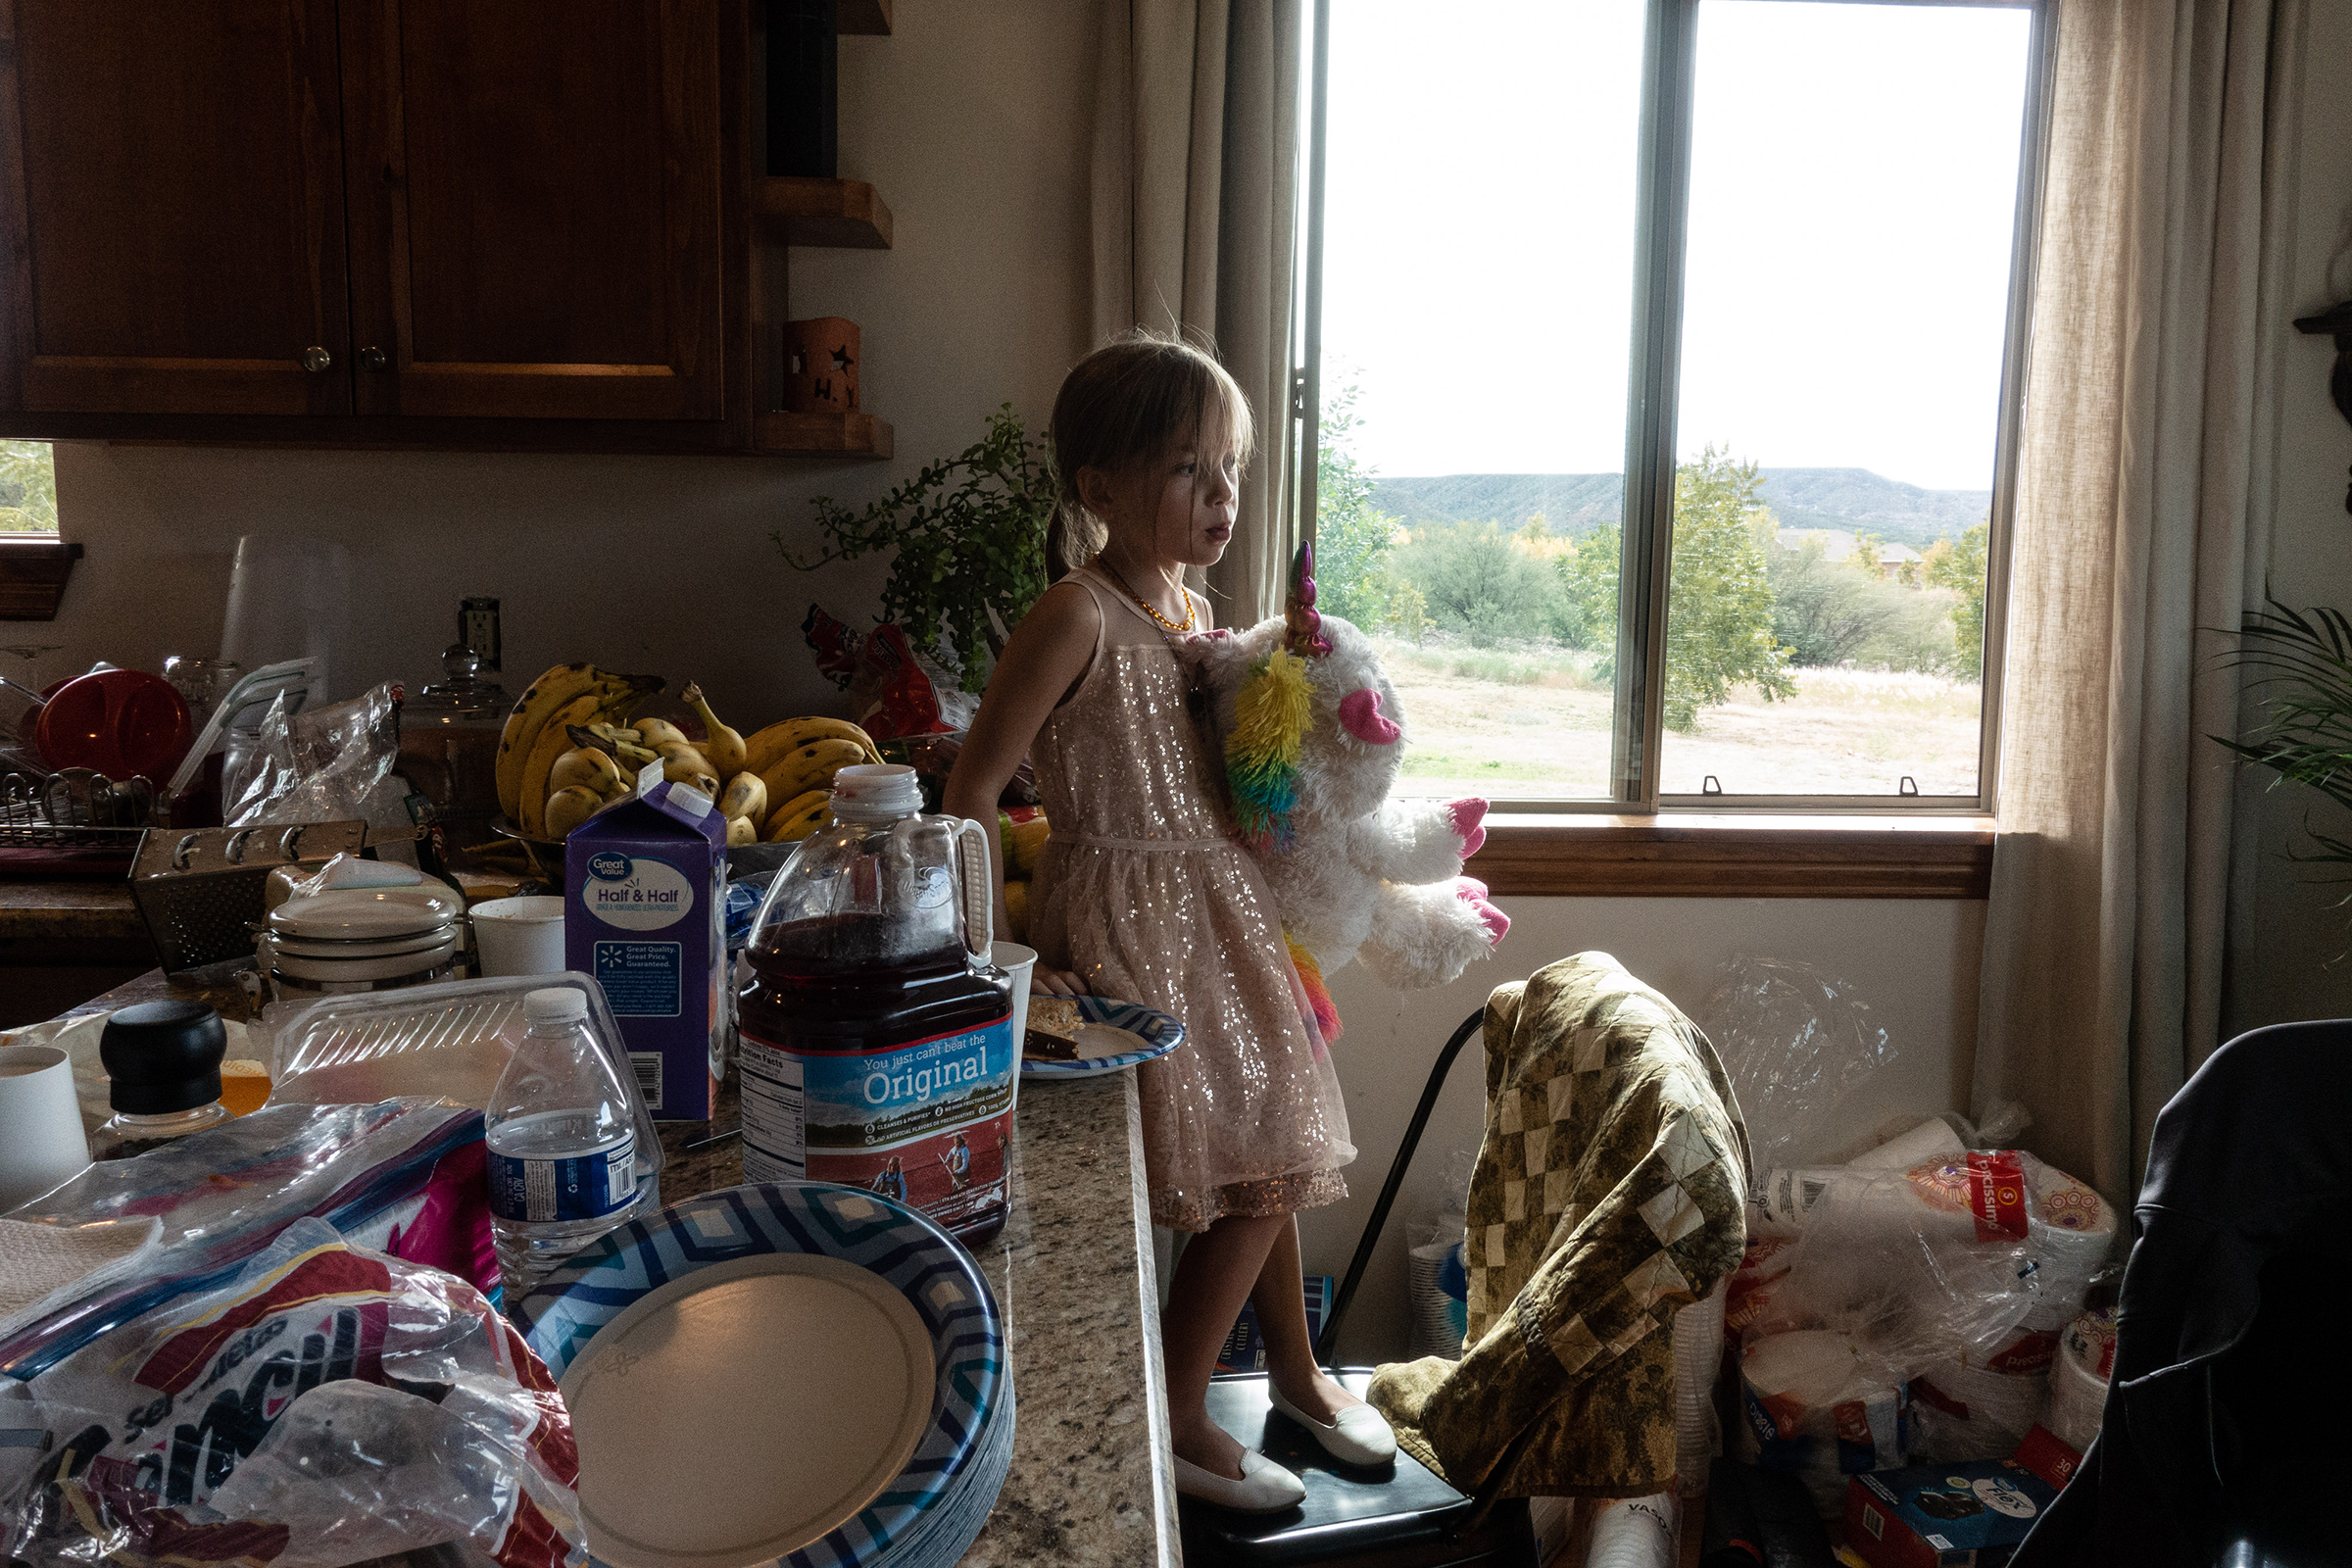 Amaryllis Miller, 5, one of Rhonita Miller's daughters, plays with a stuffed unicorn at the house.